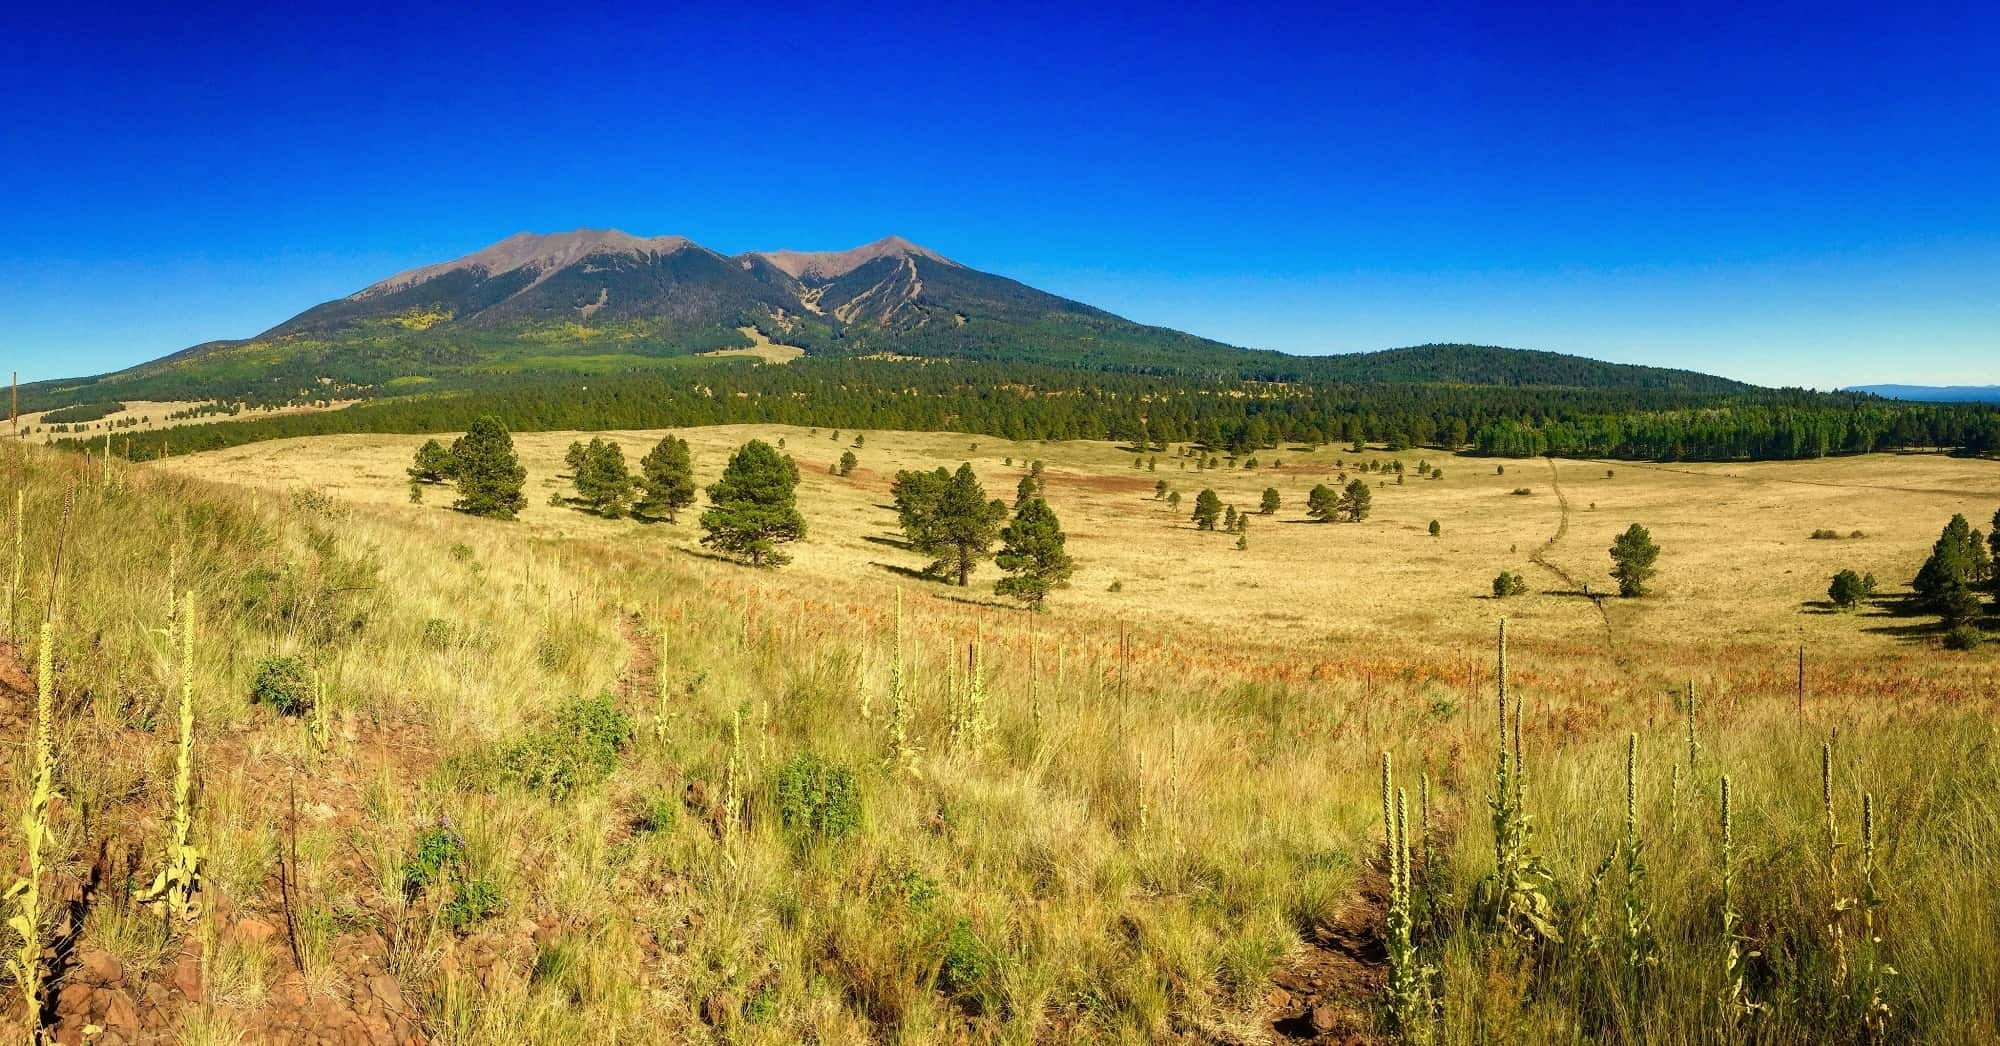 15 Fun Things to do in Flagstaff with kids [+Food, Day Trips, & More]!